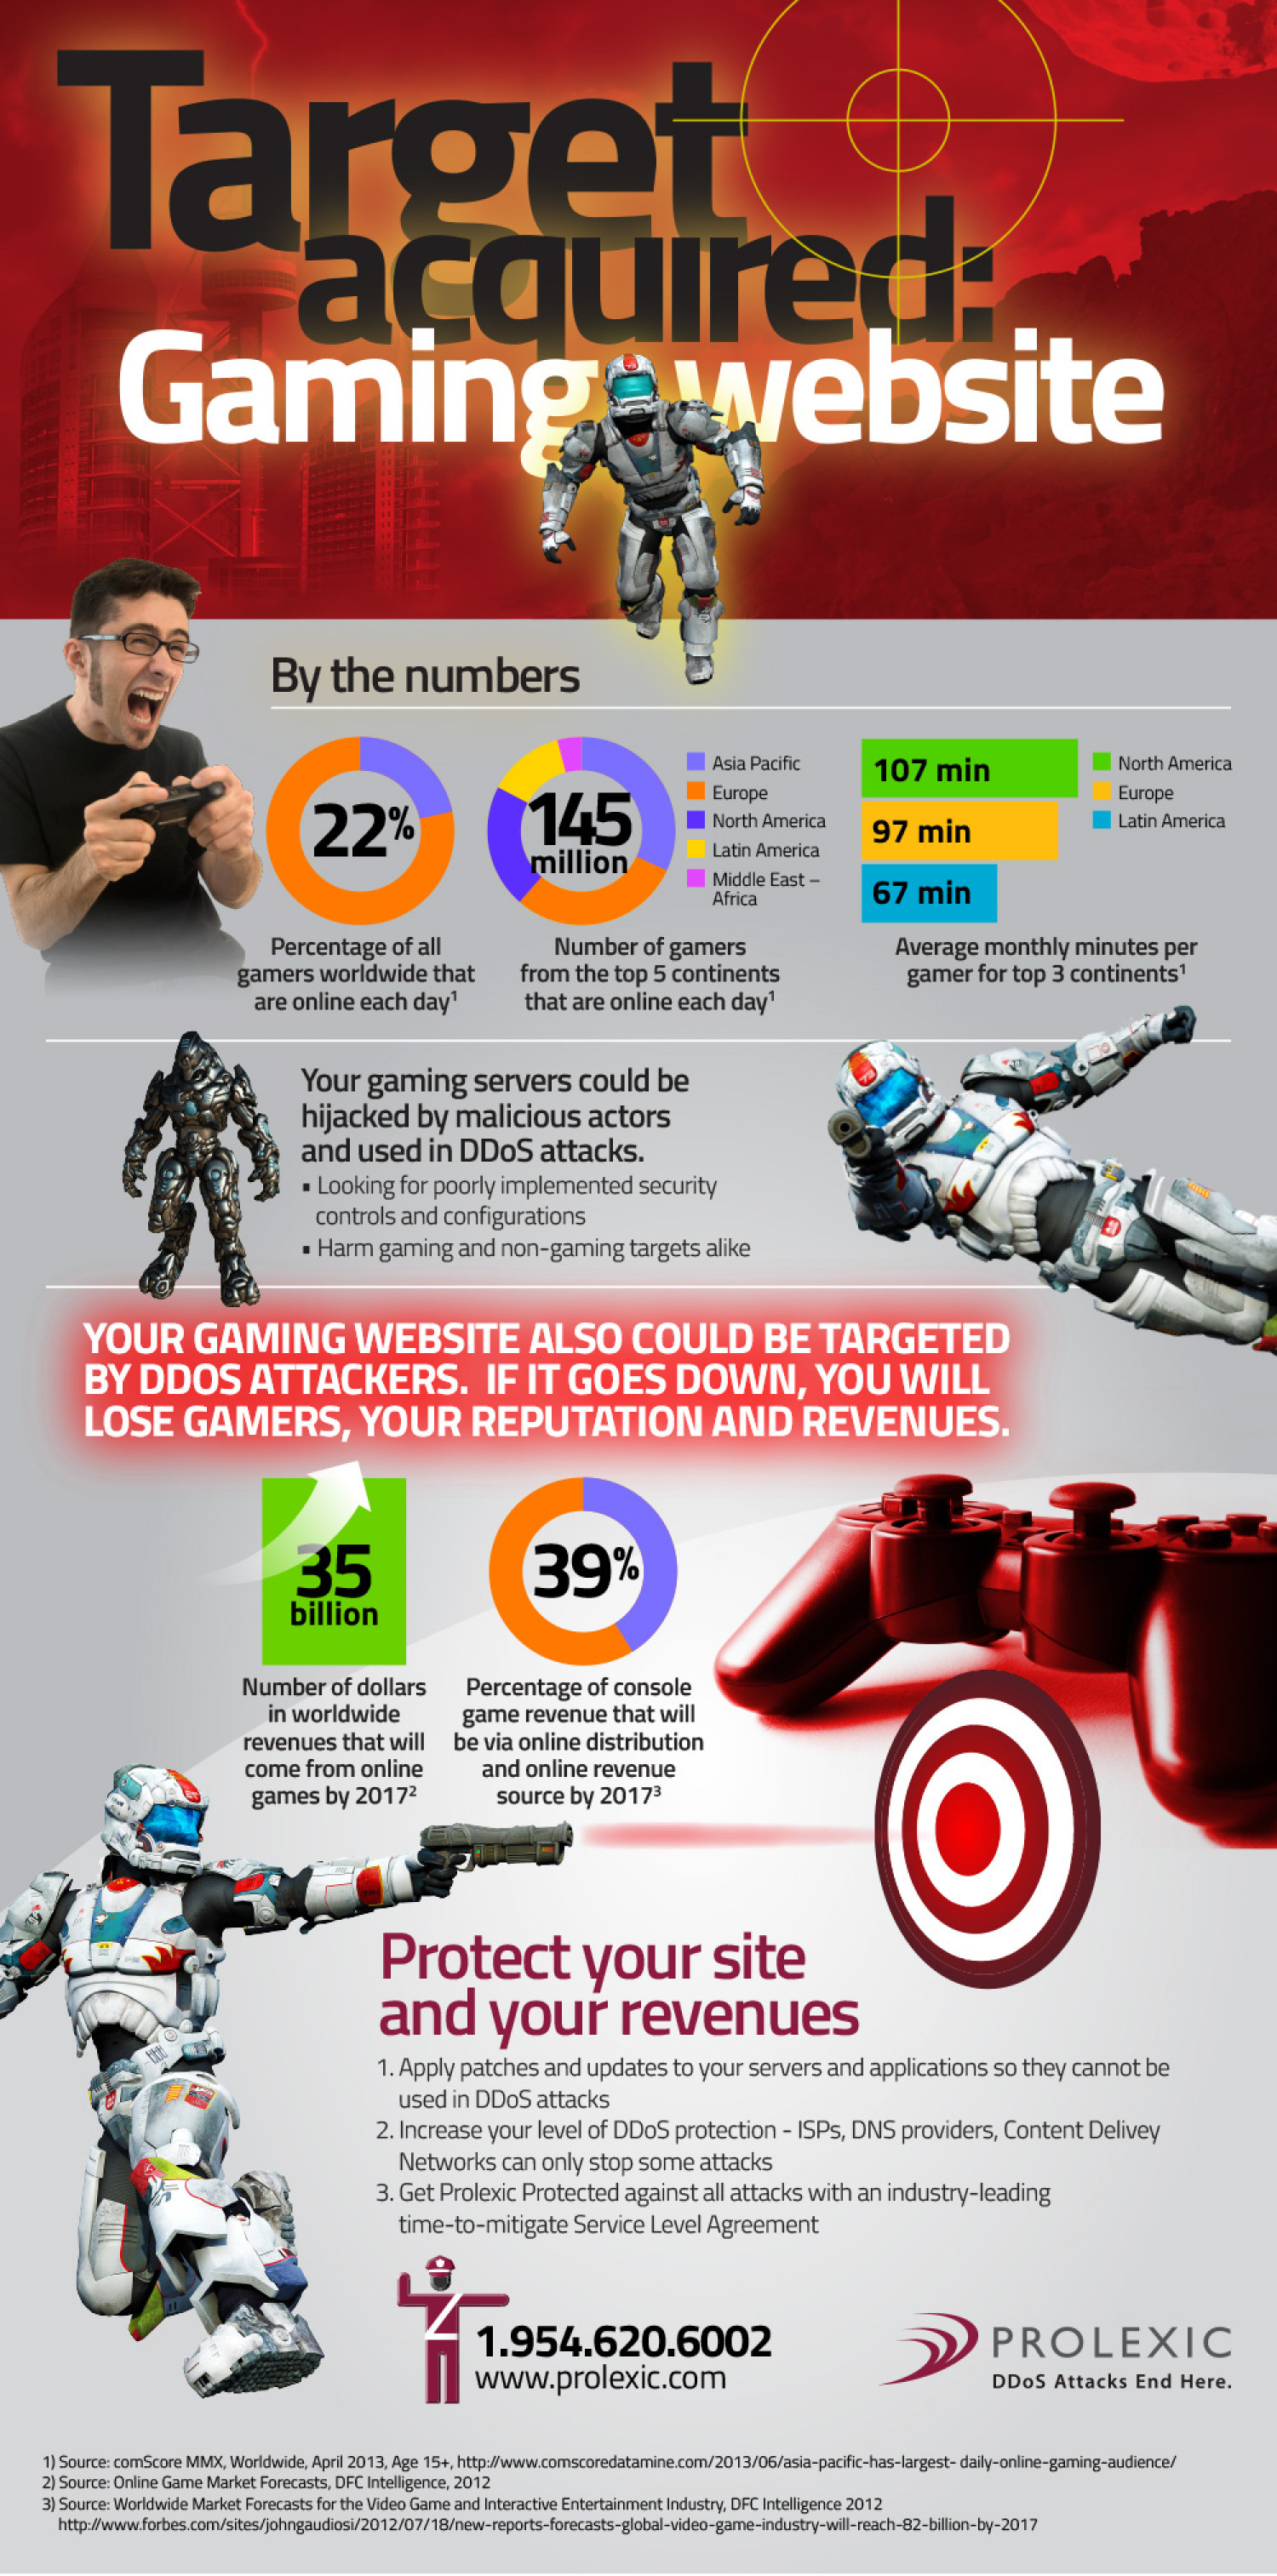 Gaming website - DDoS Attack Trends Infographic